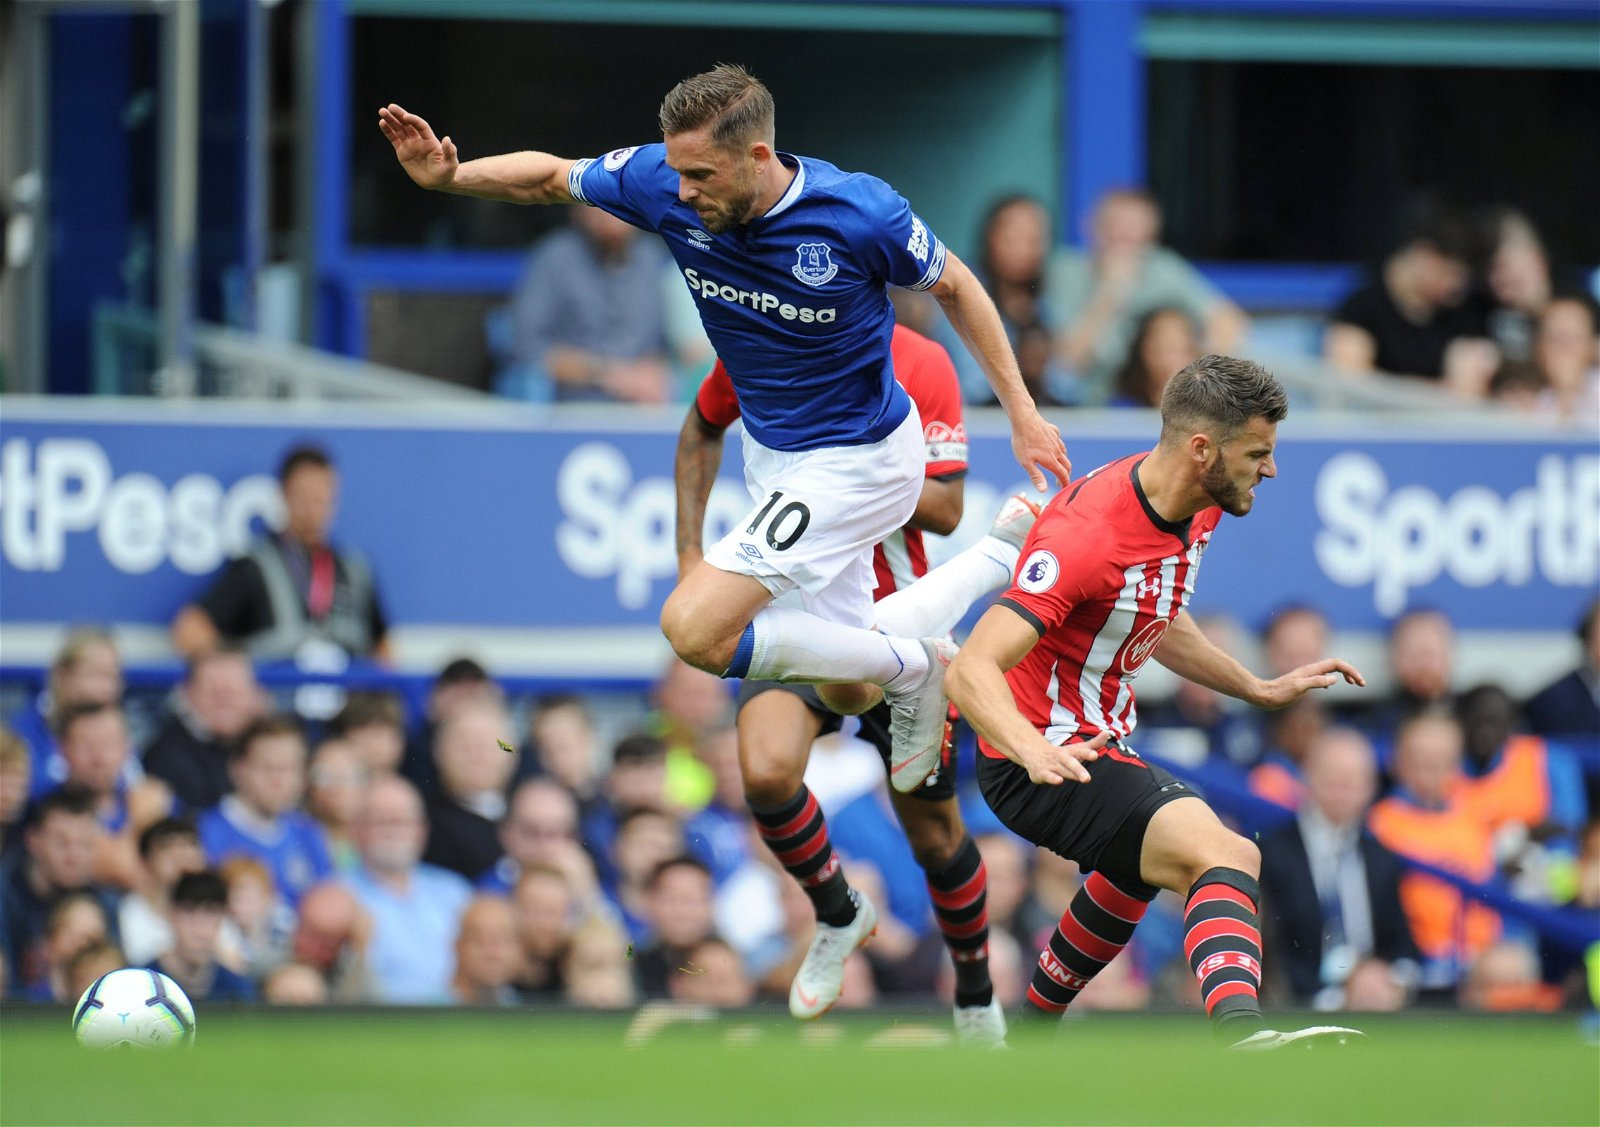 Gylfi Sigurdsson playing for Everton vs Southampton - Trust academy graduate, New role for Sigurdsson: If Silva is denied his transfer wish - opinion